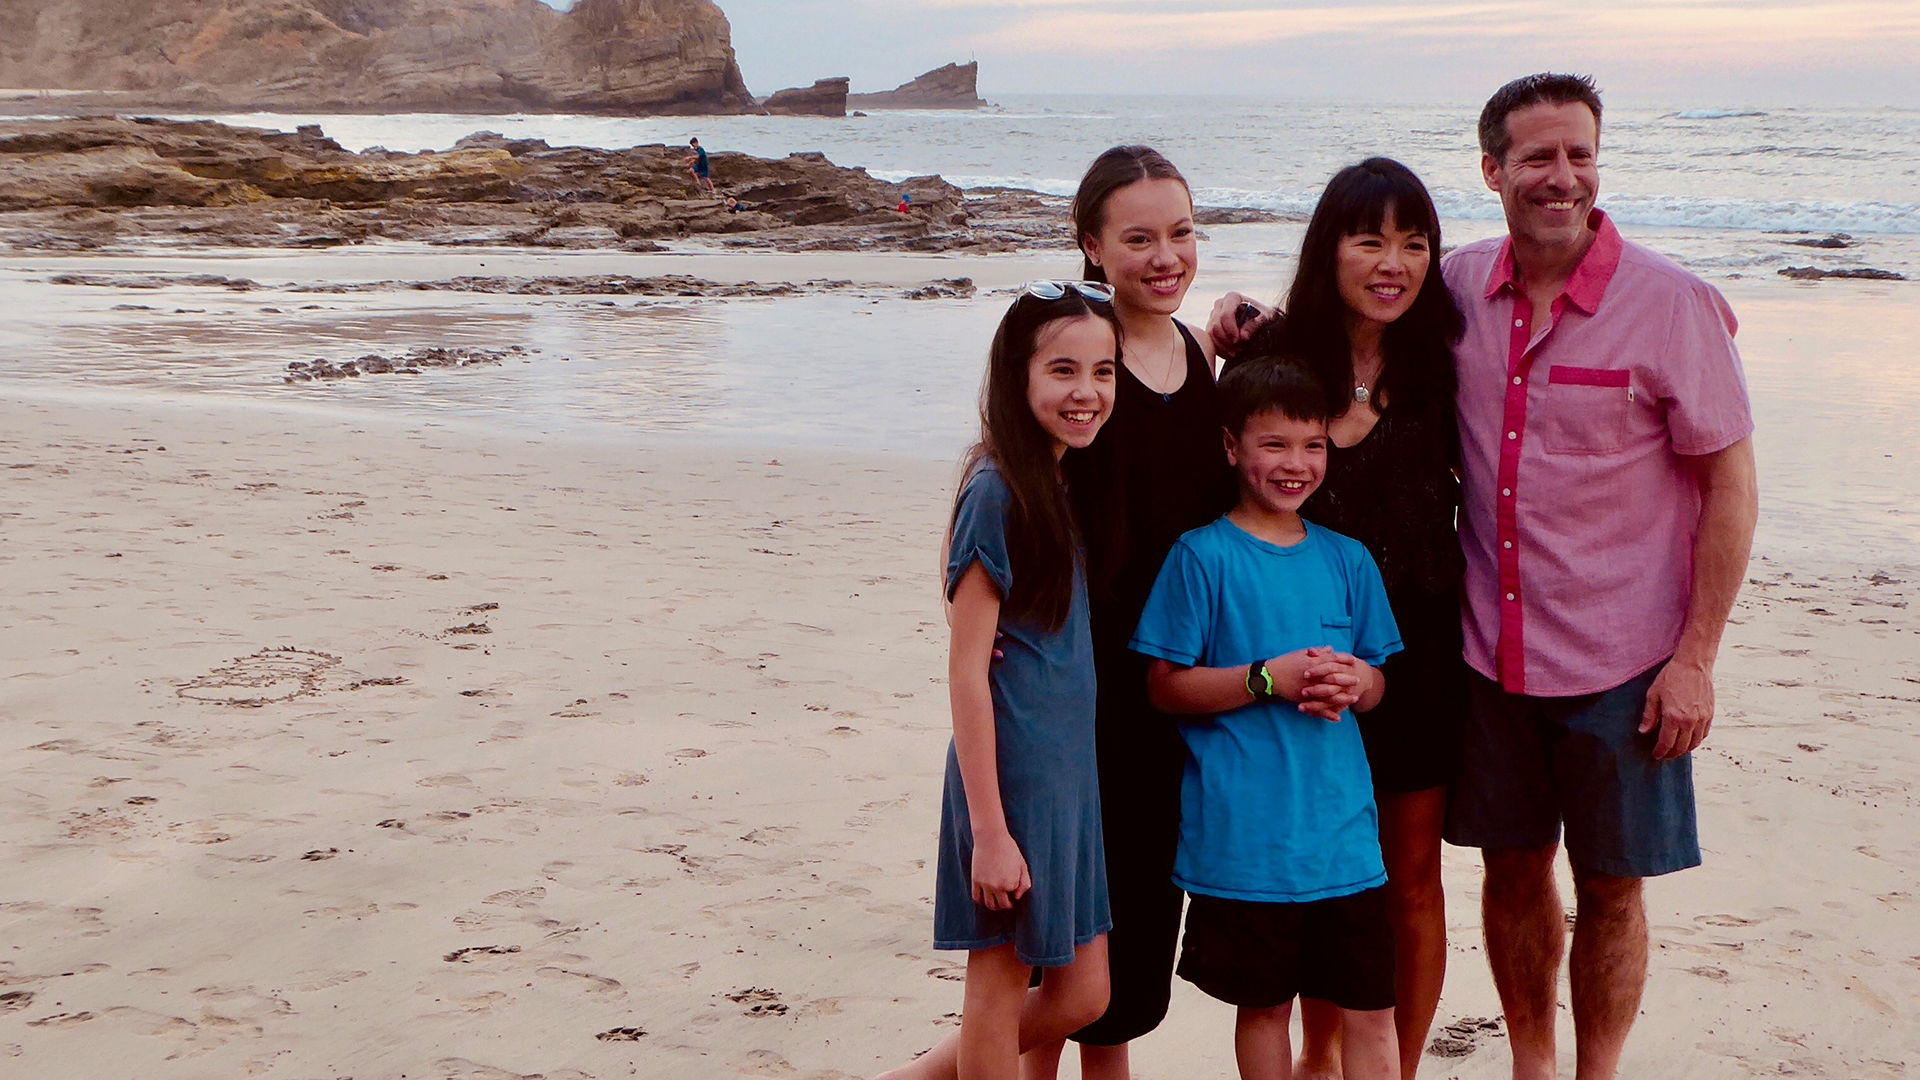 A family smiles together on a rocky beach